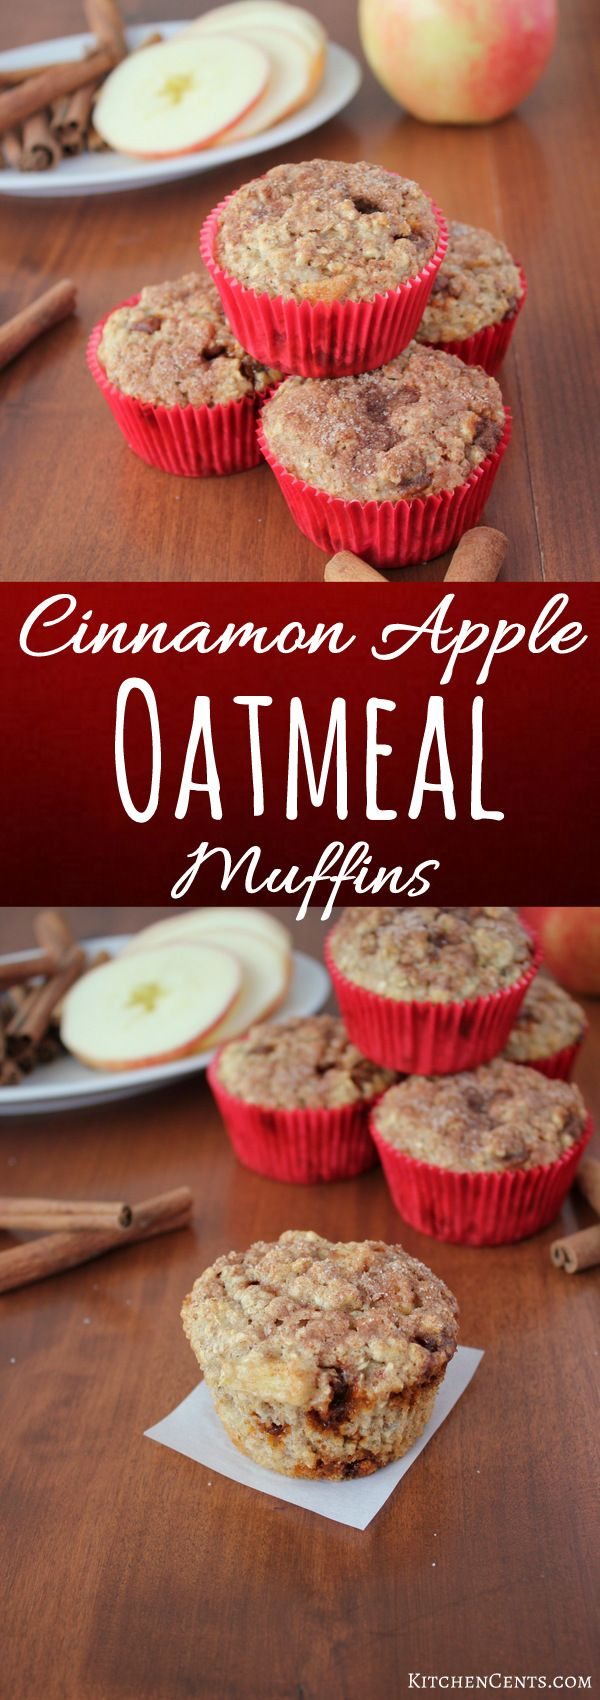 Cinnamon Apple Oatmeal Breakfast Muffins | KitchenCents.com Warm and inviting, these quick and easy Cinnamon Apple Oatmeal Breakfast Muffins are loaded with heart-healthy oats, chunks of apple and bursts of cinnamon.